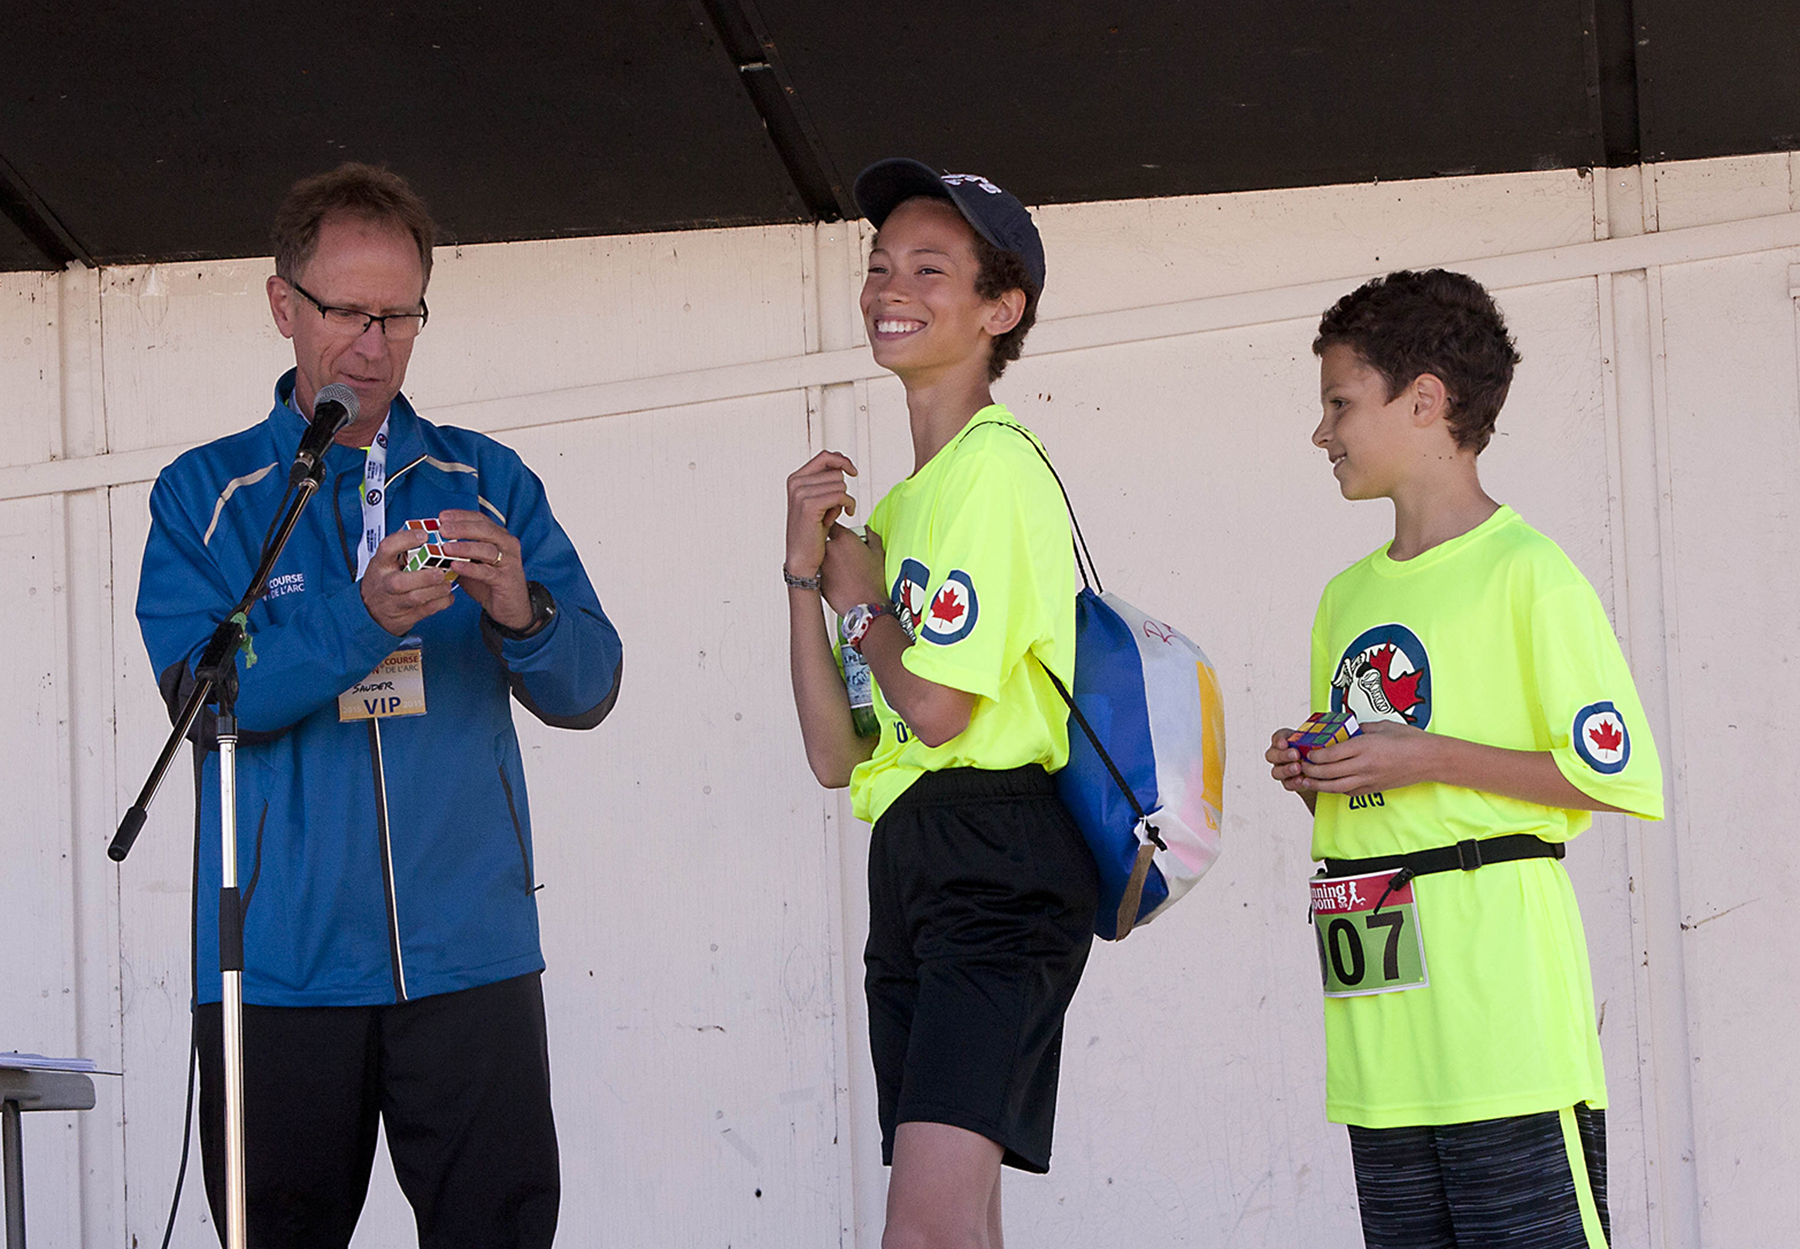 And then there are runners for whom the RCAF Run is not quite challenging enough: Winnipeg students Kingston Harding (Grade 6) and Alex Sala (Grade 5), from Winnipeg's École Dieppe, who completed the 2015 Run while solving Rubik's Cubes, stump a (stationary) Run VIP with a Cube. PHOTO: Voxair